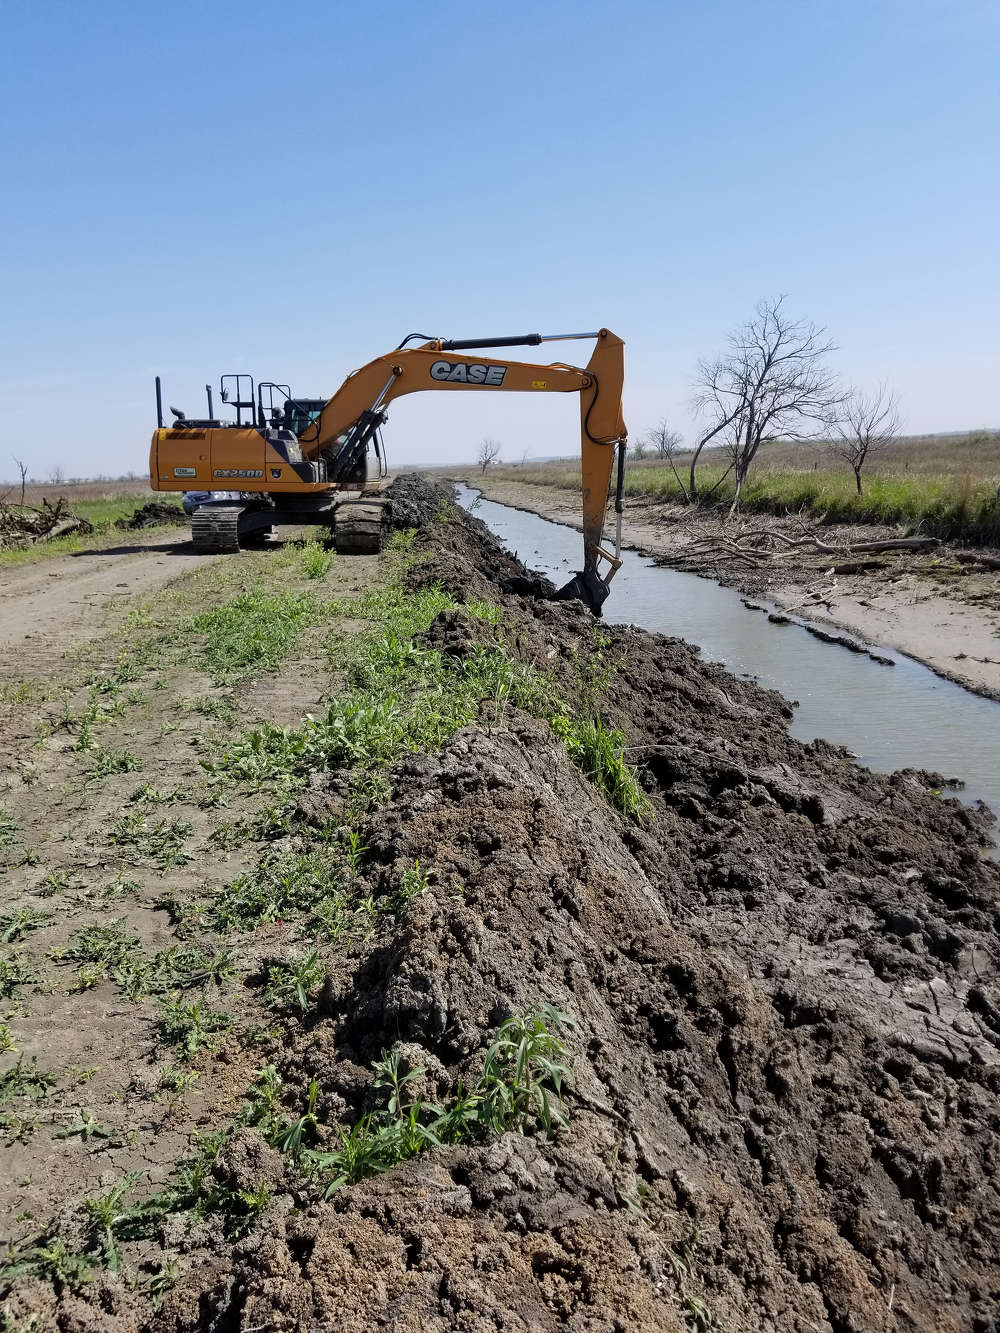 Team Rubicon tore down four levees and removed seven water culverts that were initially built to develop a wetland habitat for migratory birds.